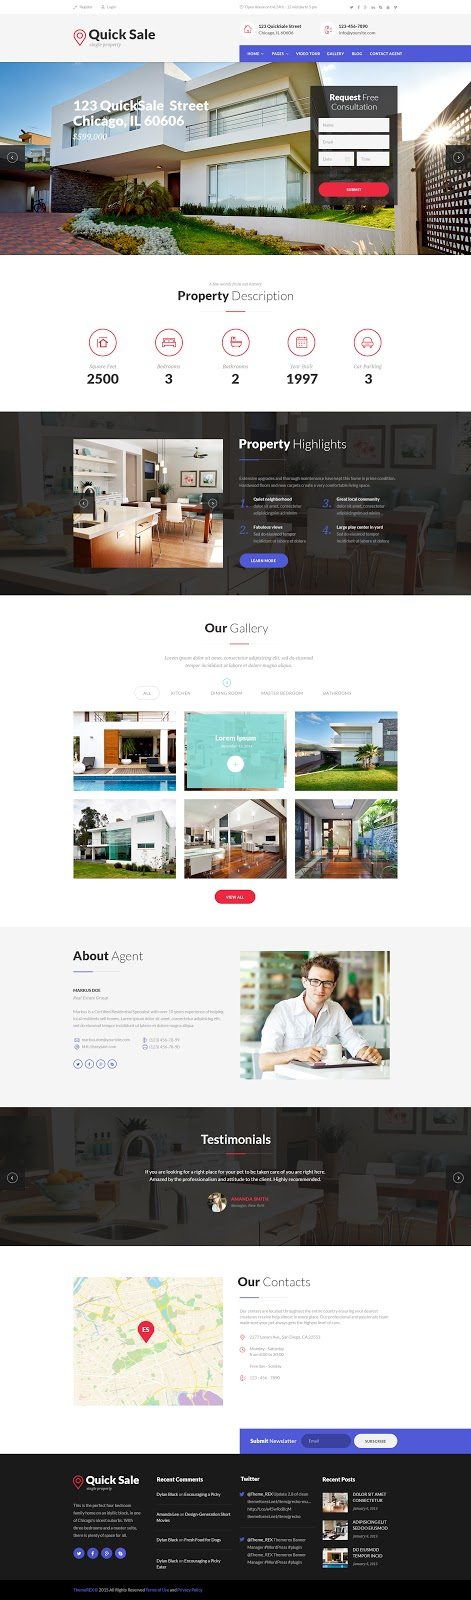 Real Estate Website Templates 25 Examples  How to Choose - property management websites templates